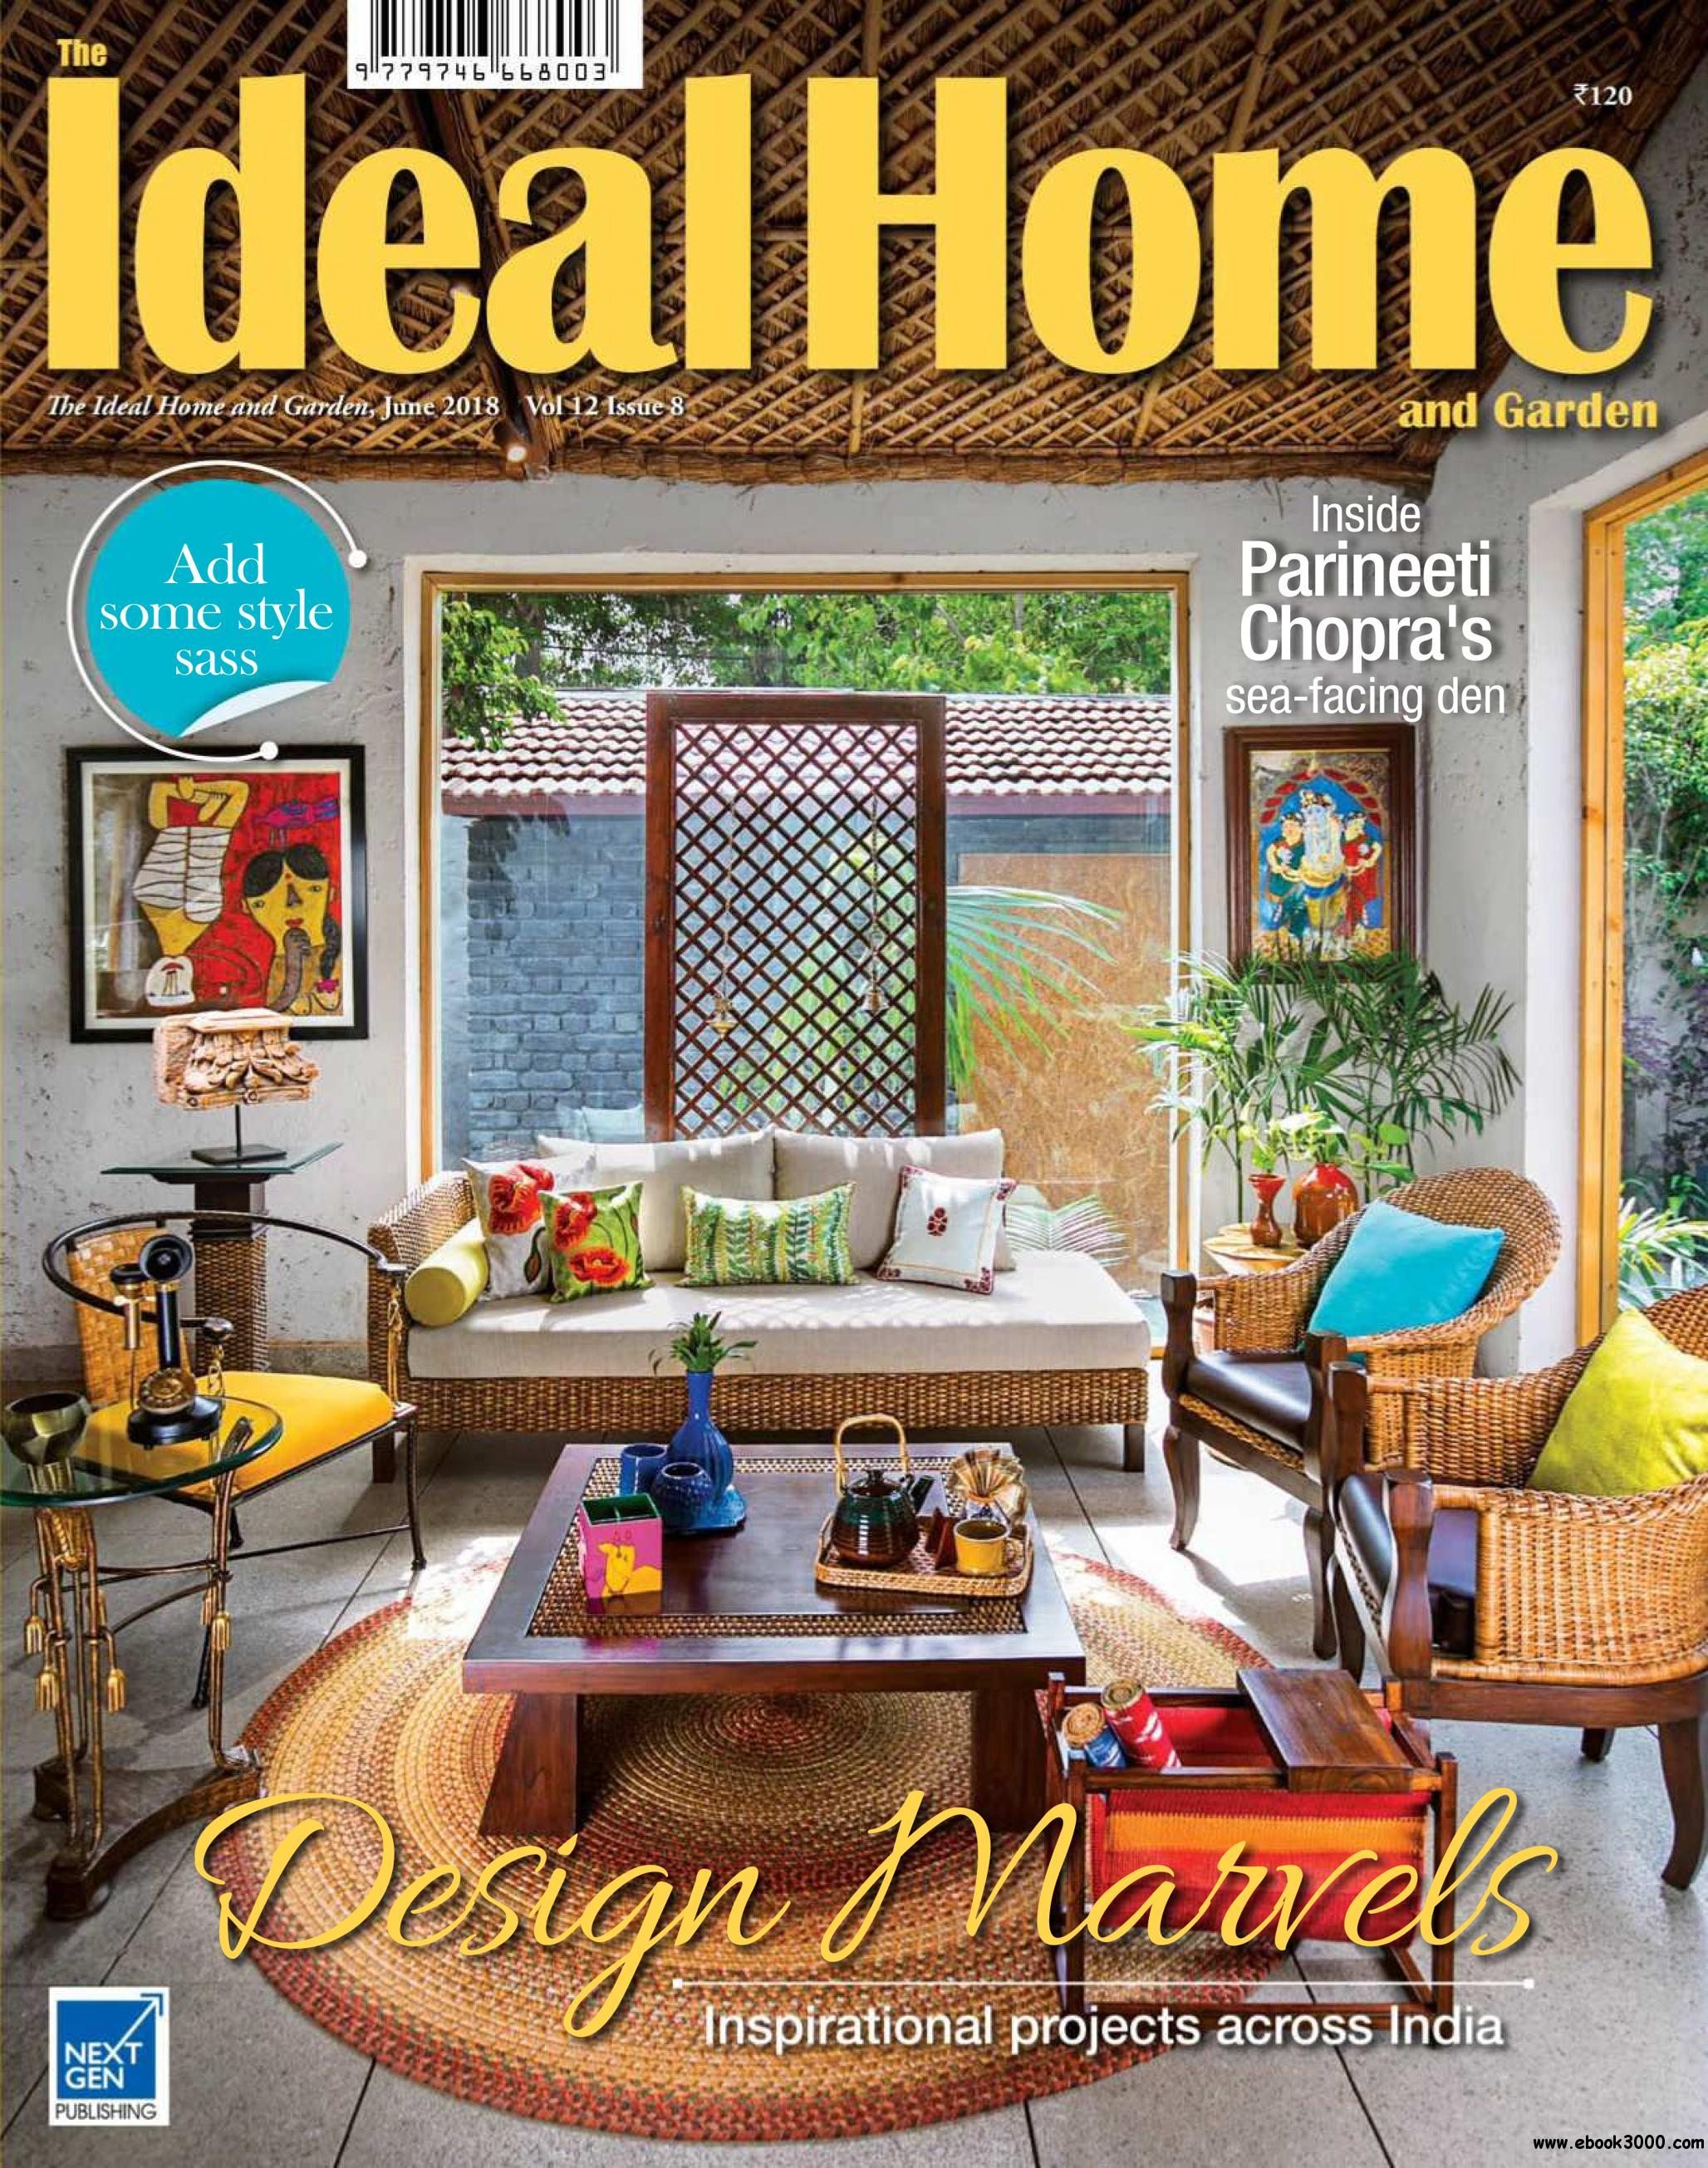 The Ideal Home and Garden - June 2018 - Free eBooks Download on keystone home design, nelson home design, byron home design, howes home design, jefferson home design, english home design, kingston home design, high-tech home design, group home design, perry home design, white home design, idea home design, crawford home design, hamilton home design, morgan home design, good home design, gray home design, exterior home house design, lexington home design, universal home design,